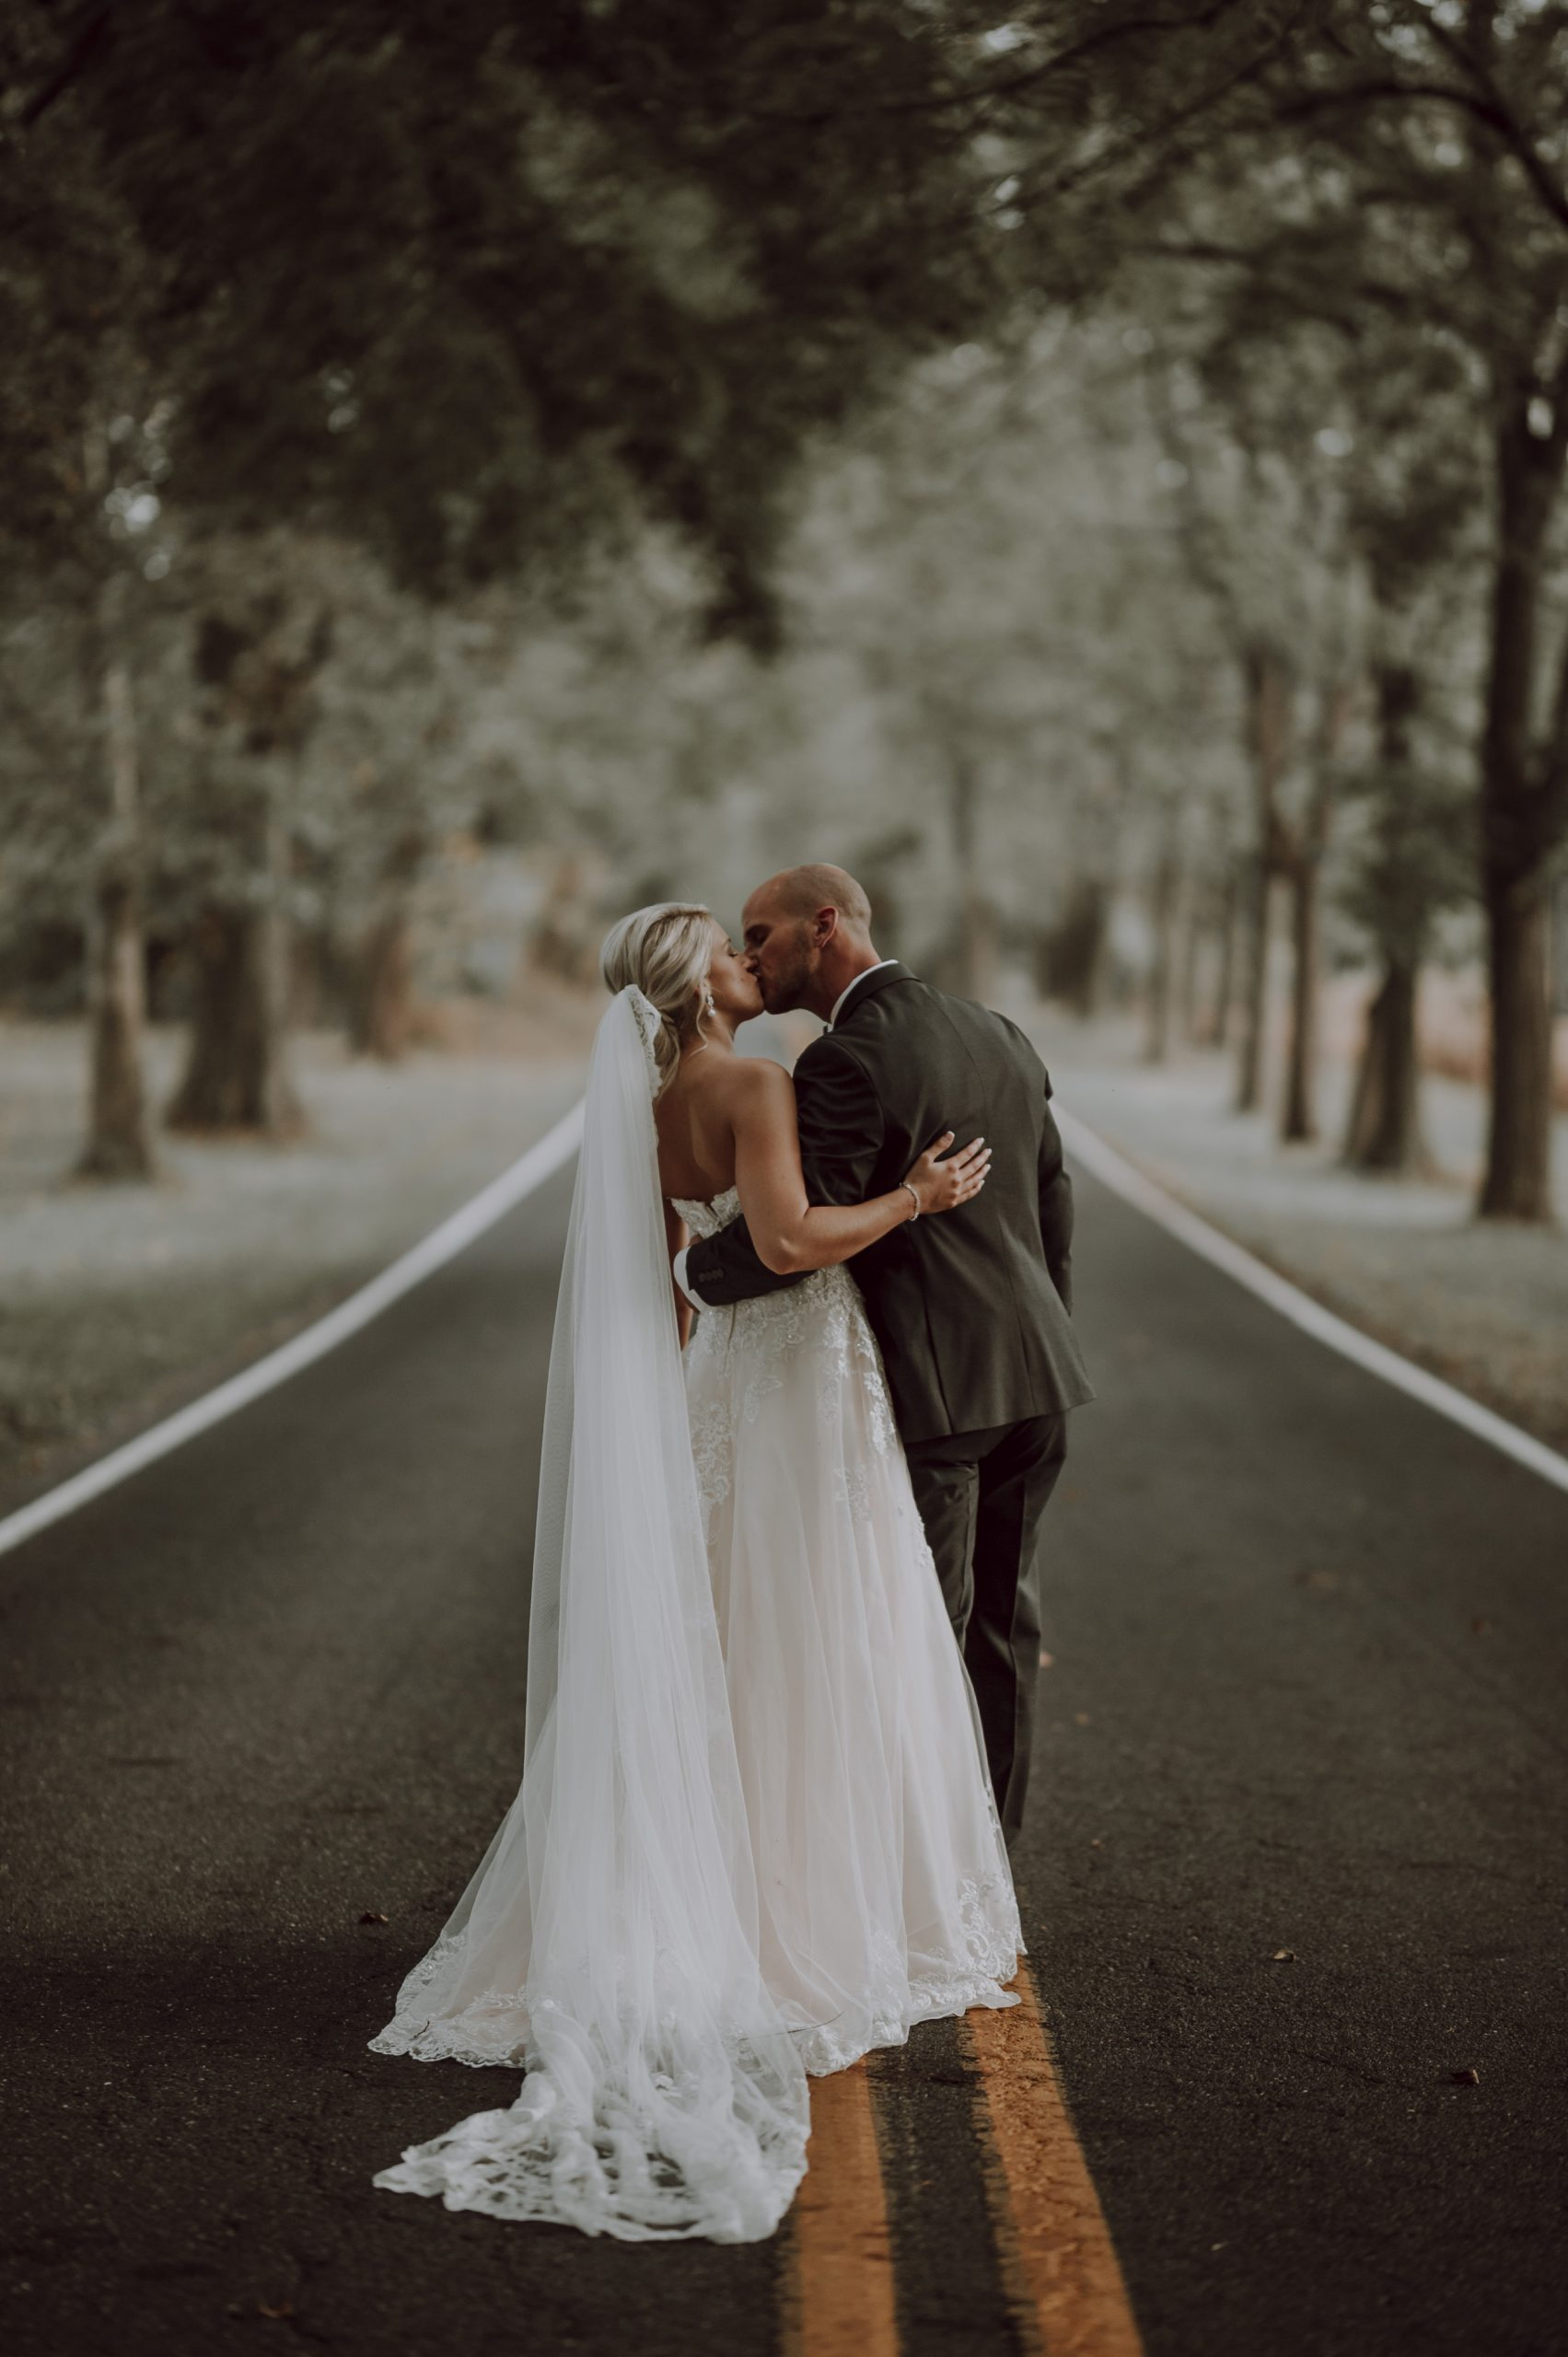 Loving newly wedded couple on their road to the rest of their lives. Captured by Lovefusion Photography at Stock's Manor in Mechanicsburg, PA. Featured on Dream Weddings.